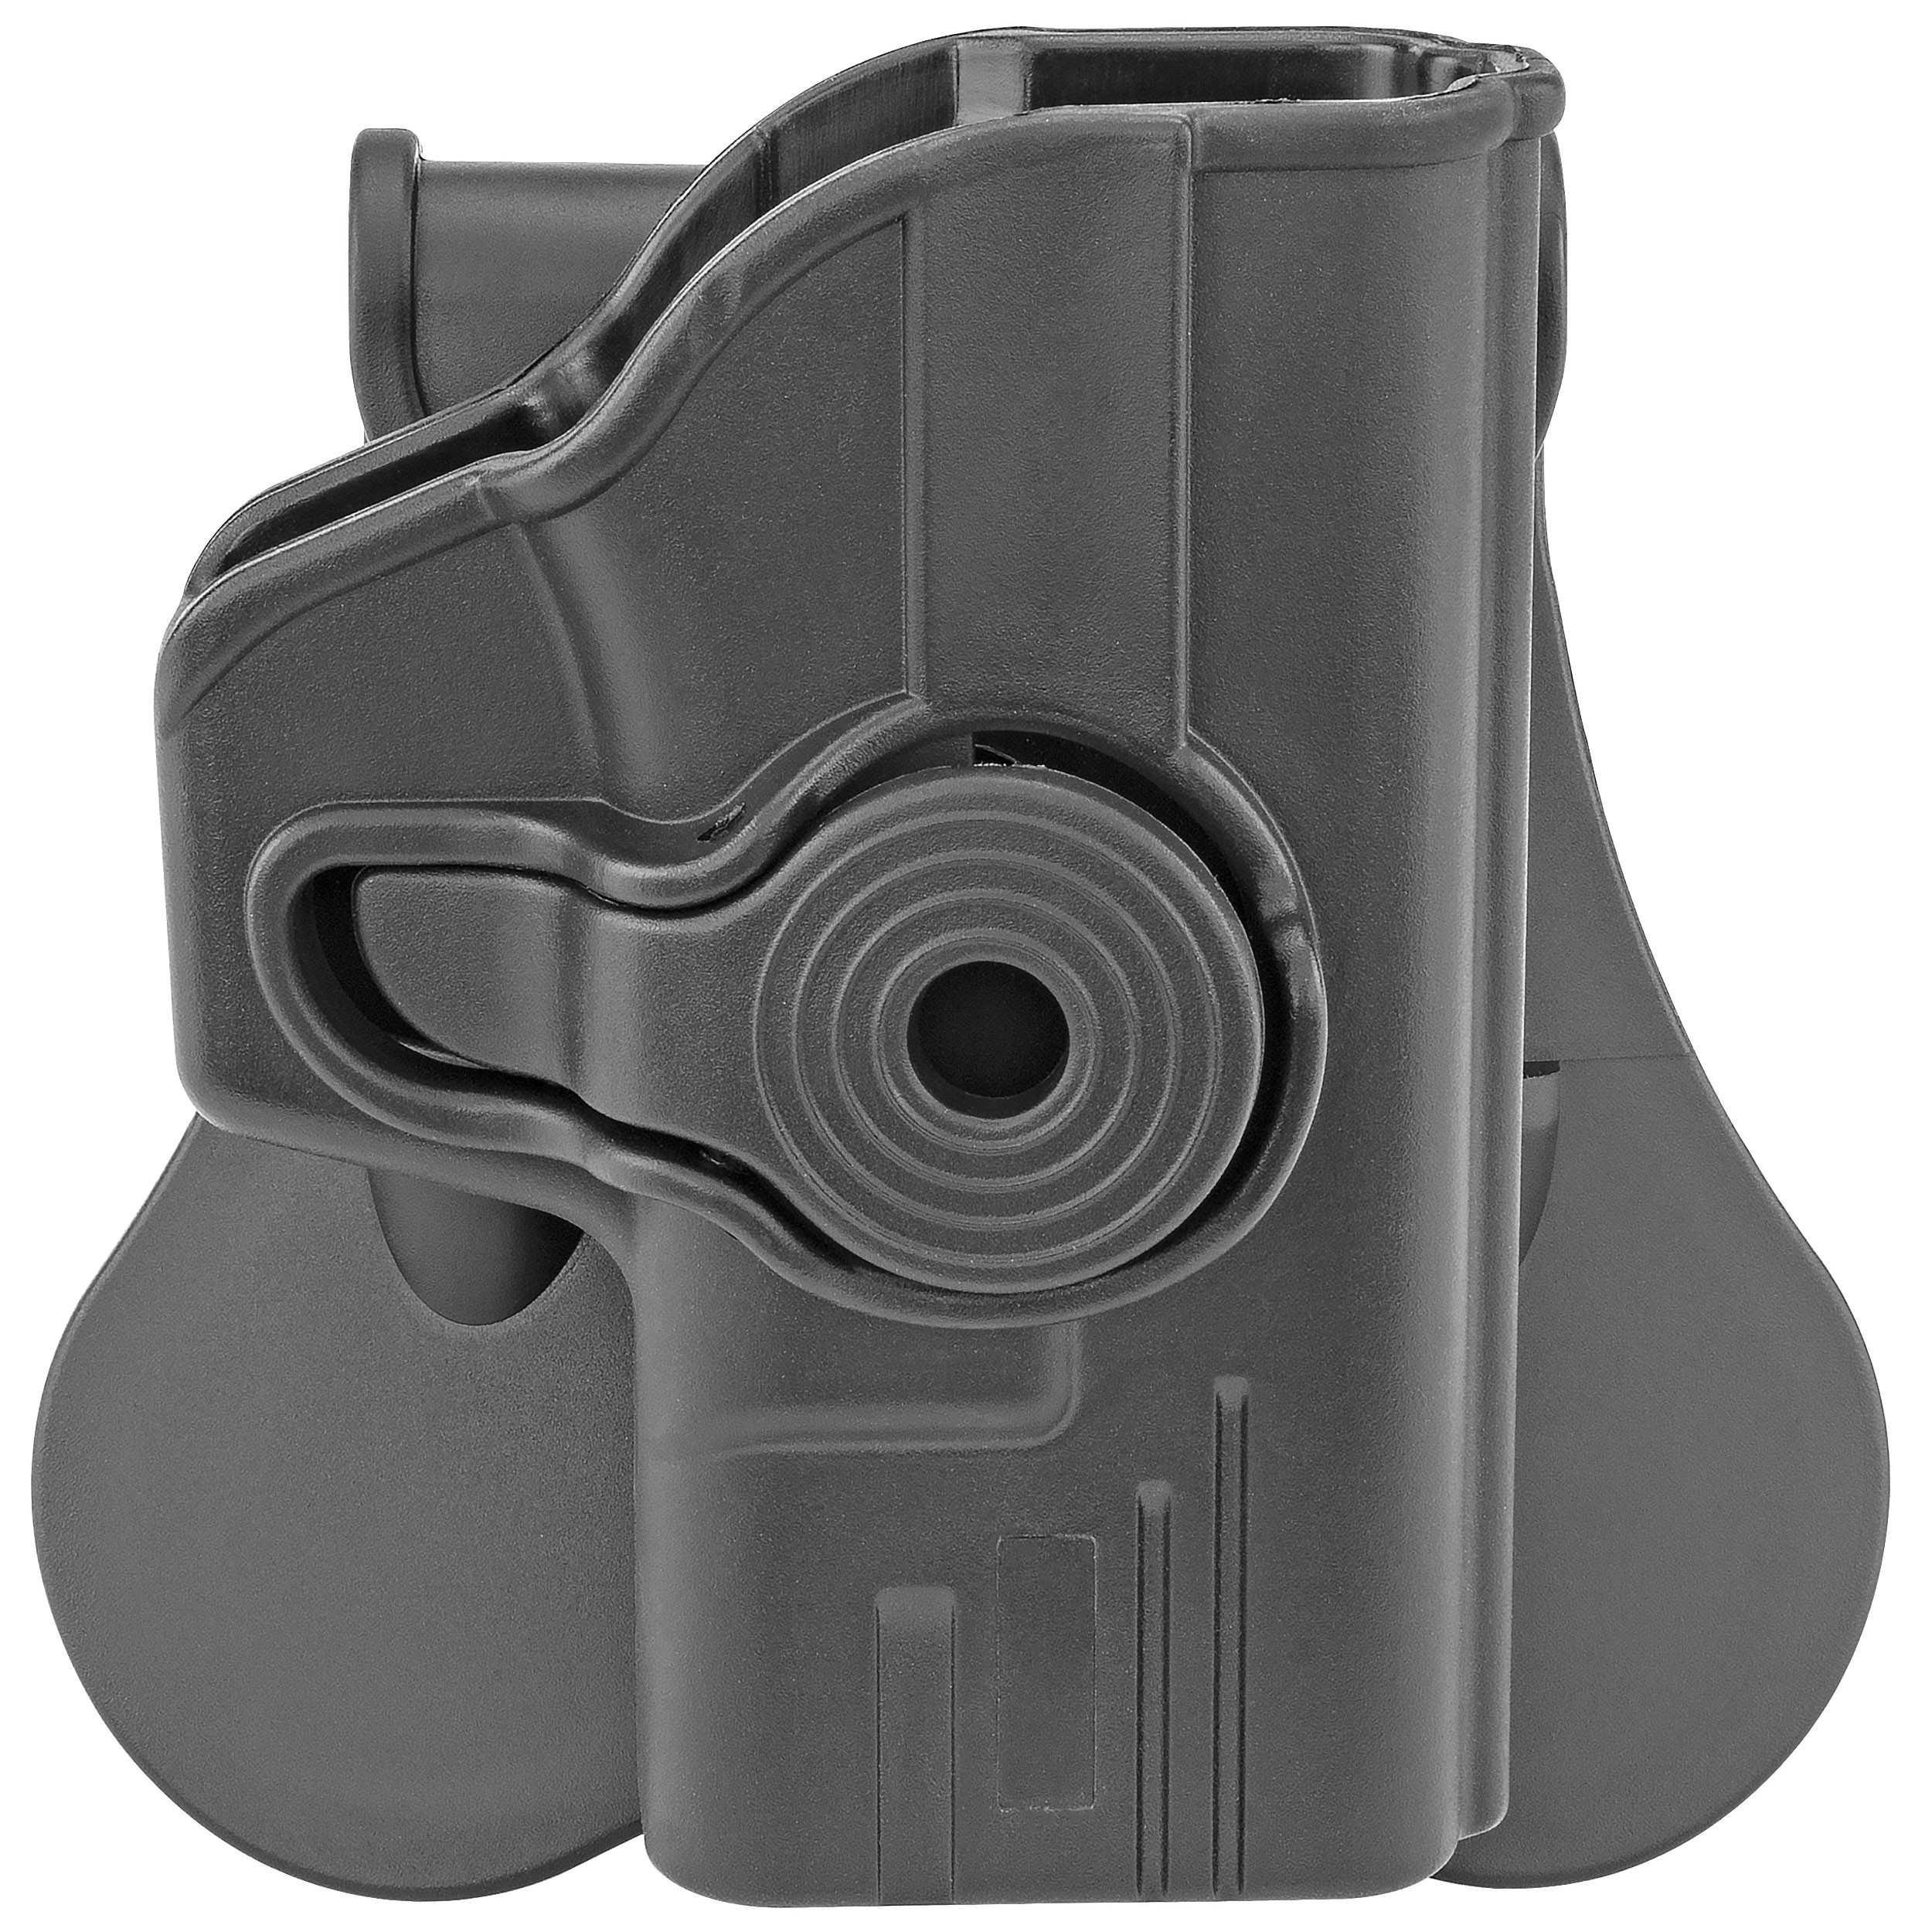 Fits Springfield XDS